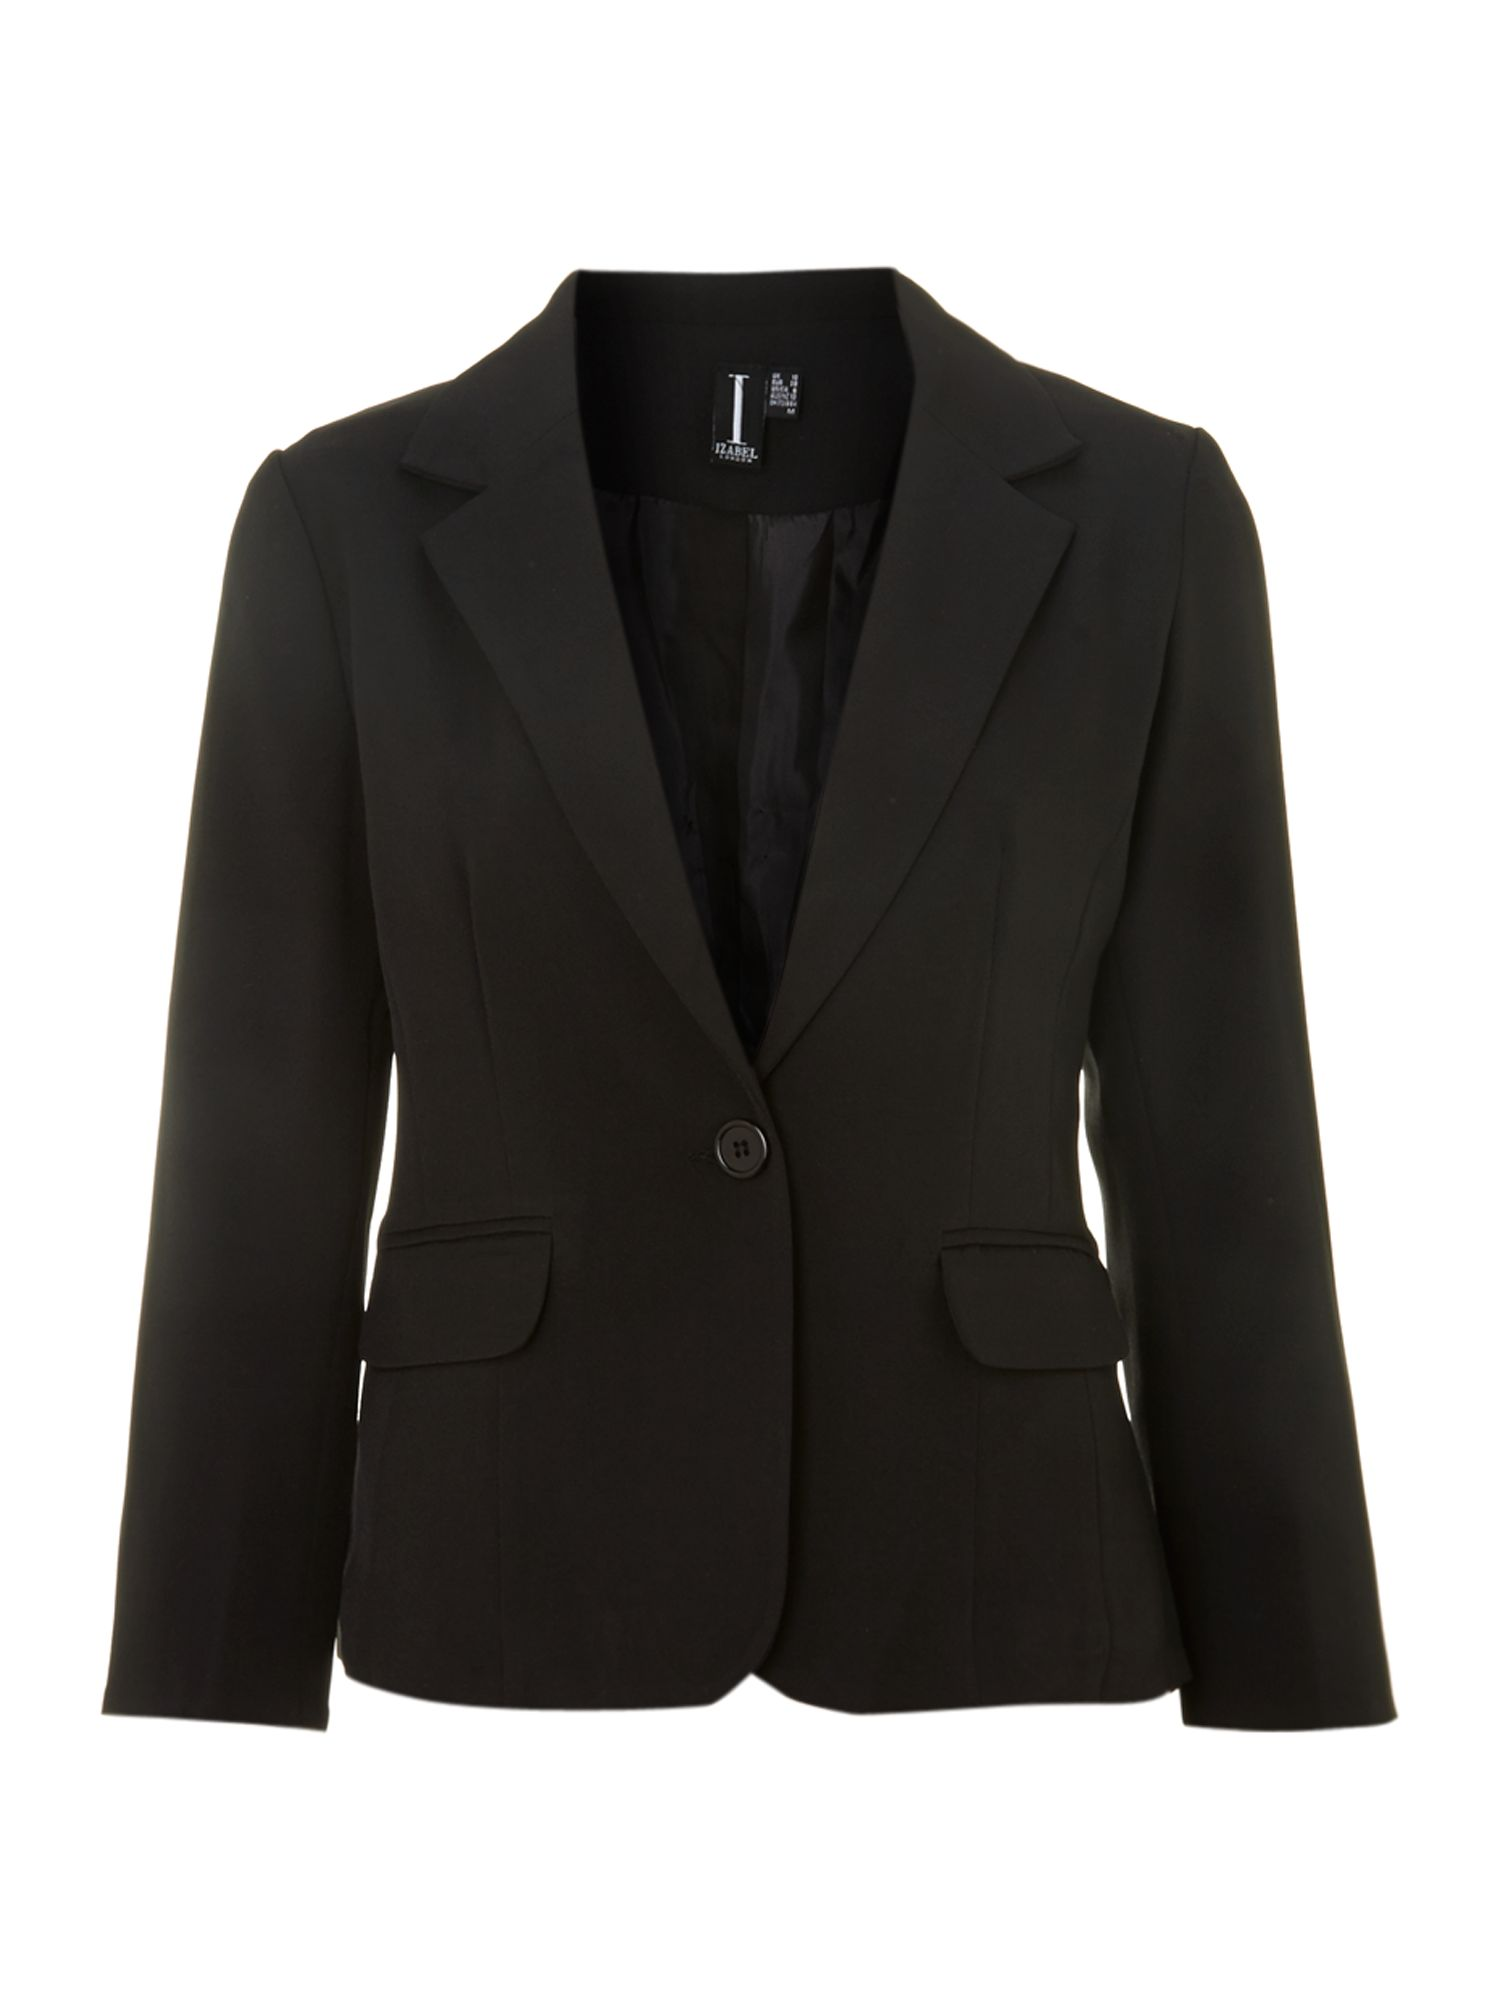 3/4 sleeve button blazer